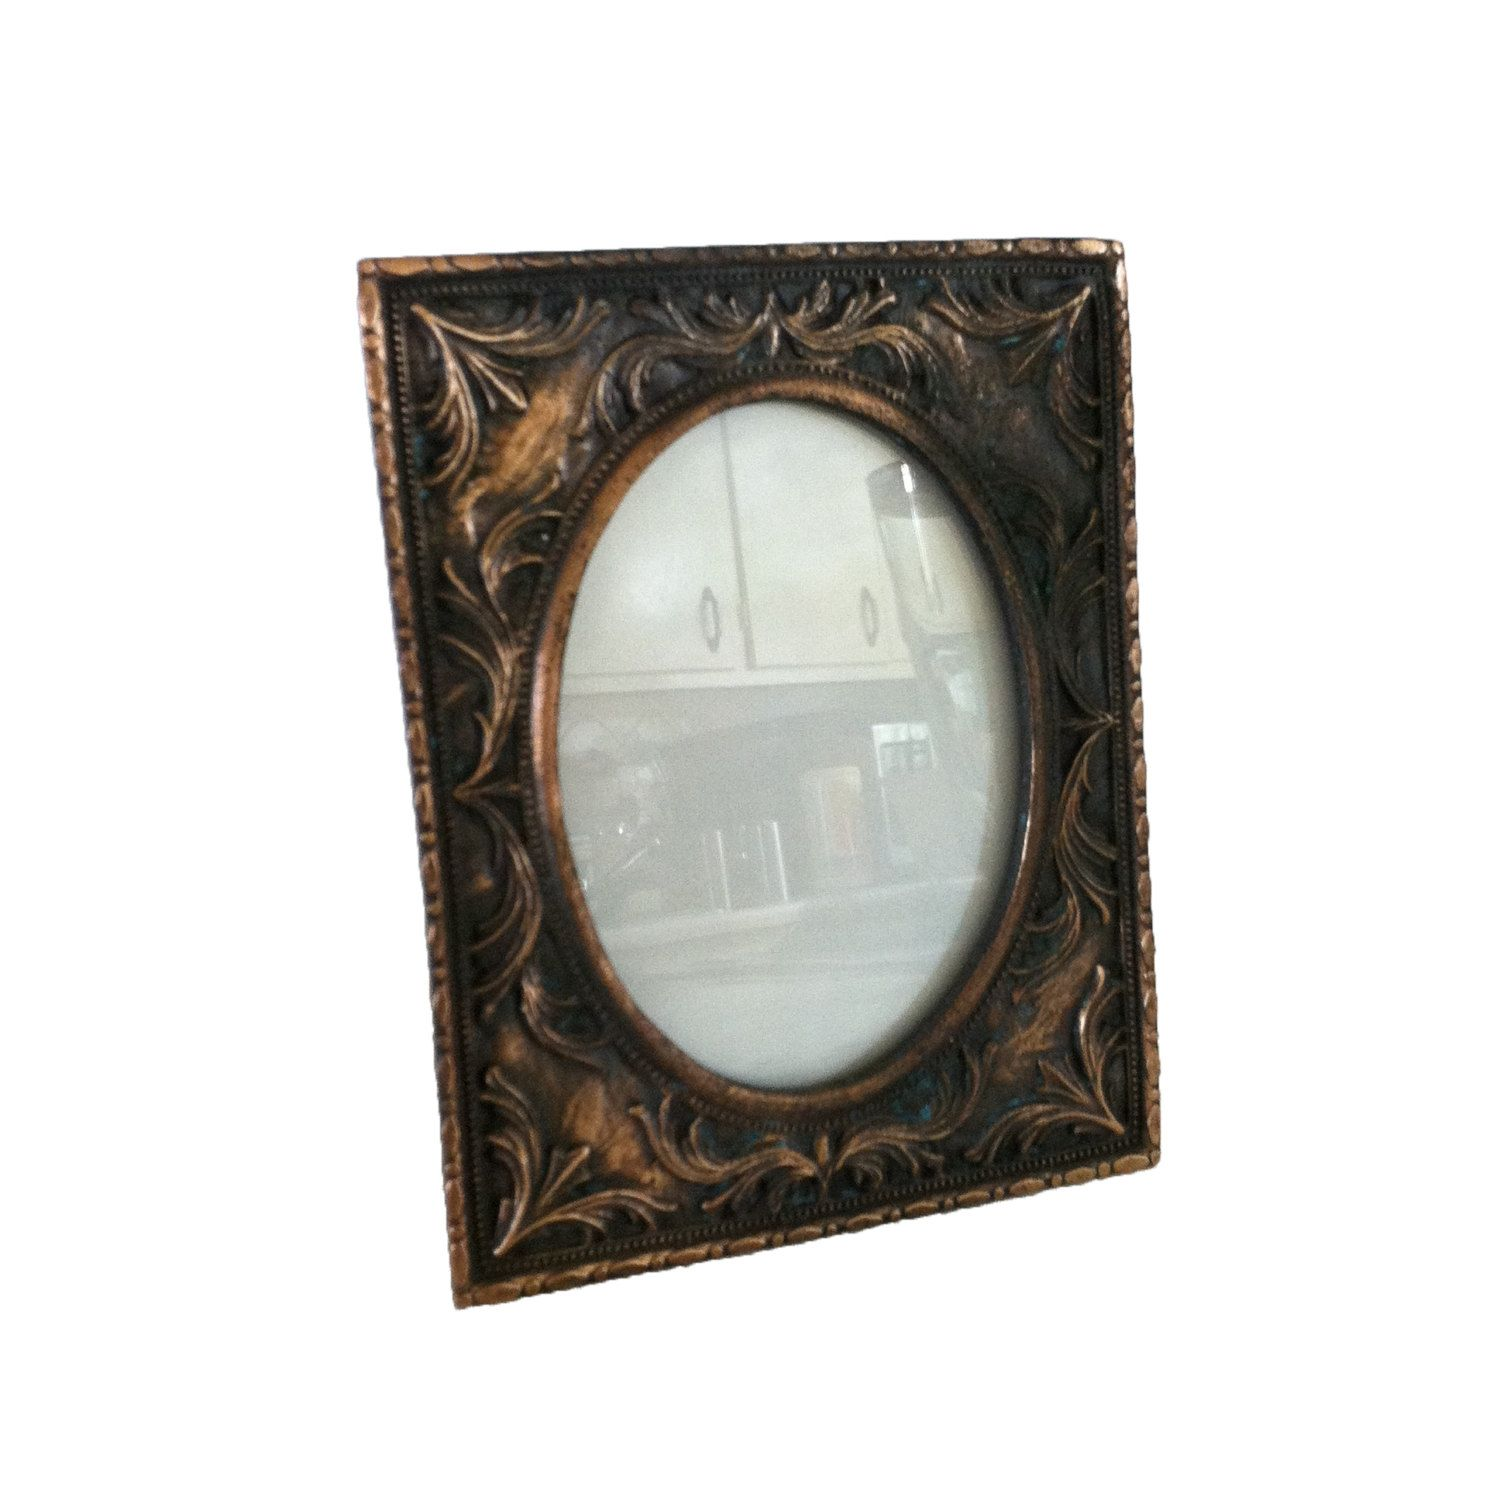 Antique picture frame solid copper photo frame display frame gift antique picture frame solid copper photo frame display frame gift idea by sunflowerbend on etsy jeuxipadfo Gallery